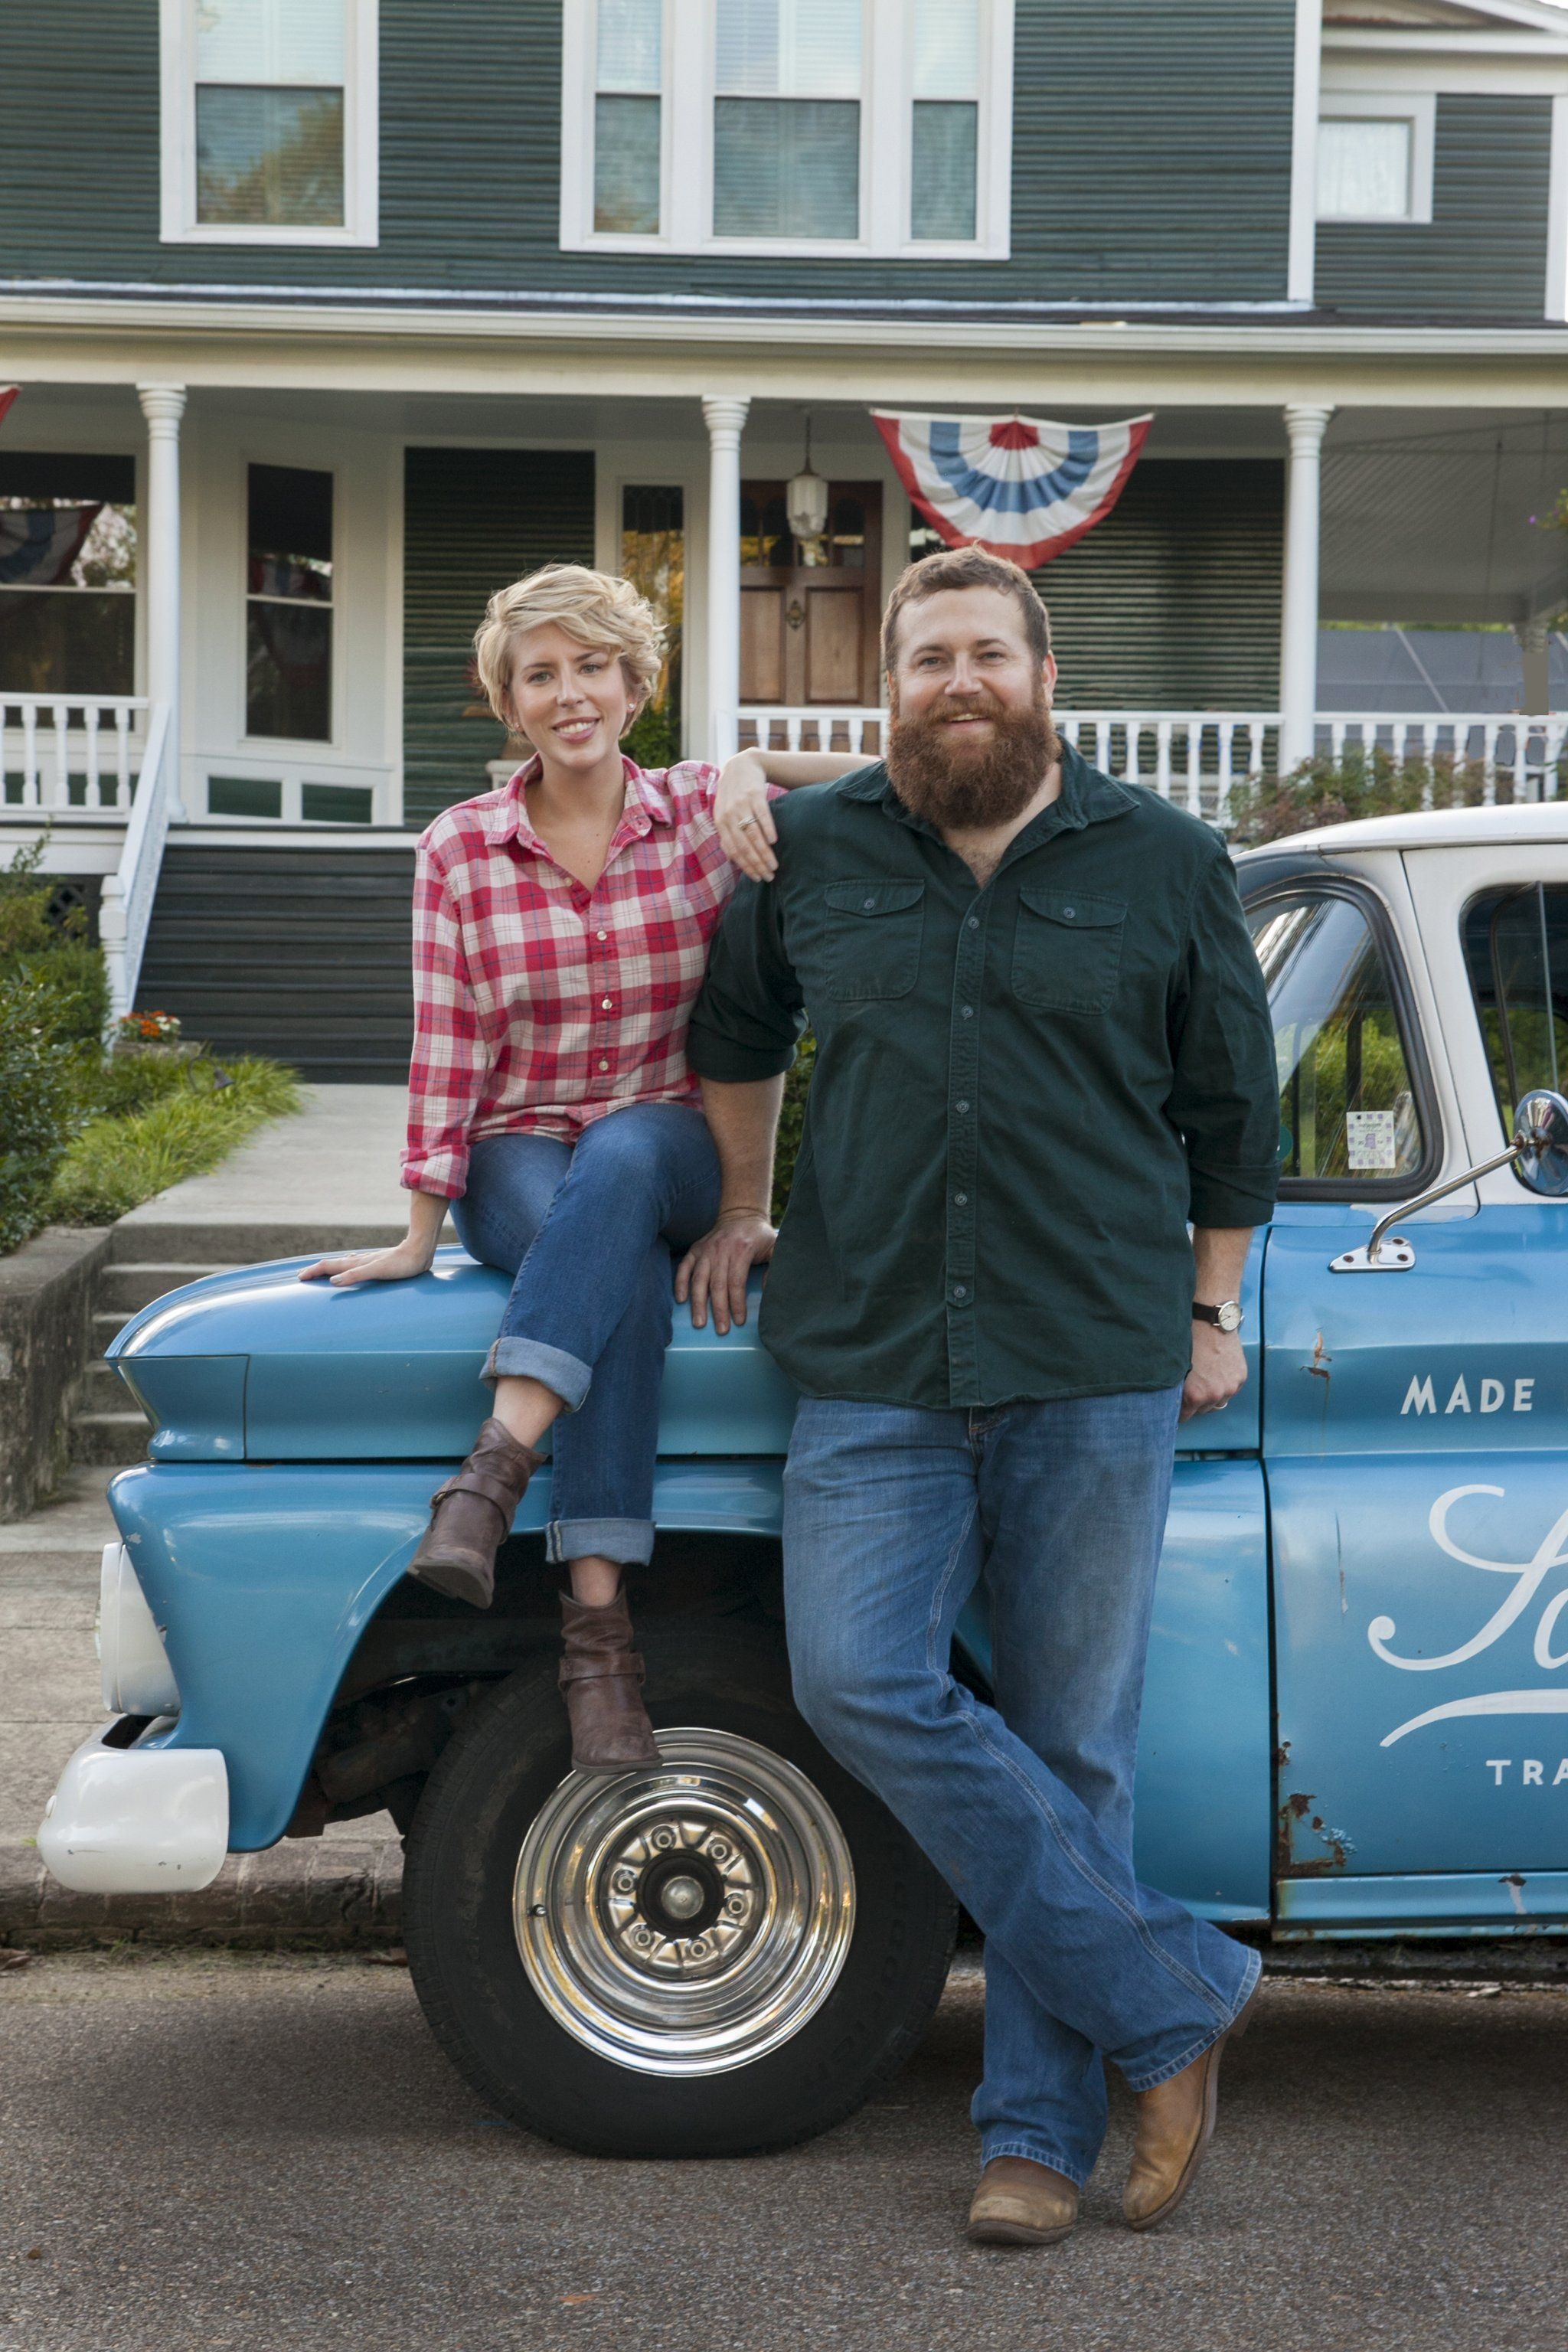 The Real Town Behind Hgtv S New Hit Show Home Town Home Town Hgtv Erin Napier Show Home